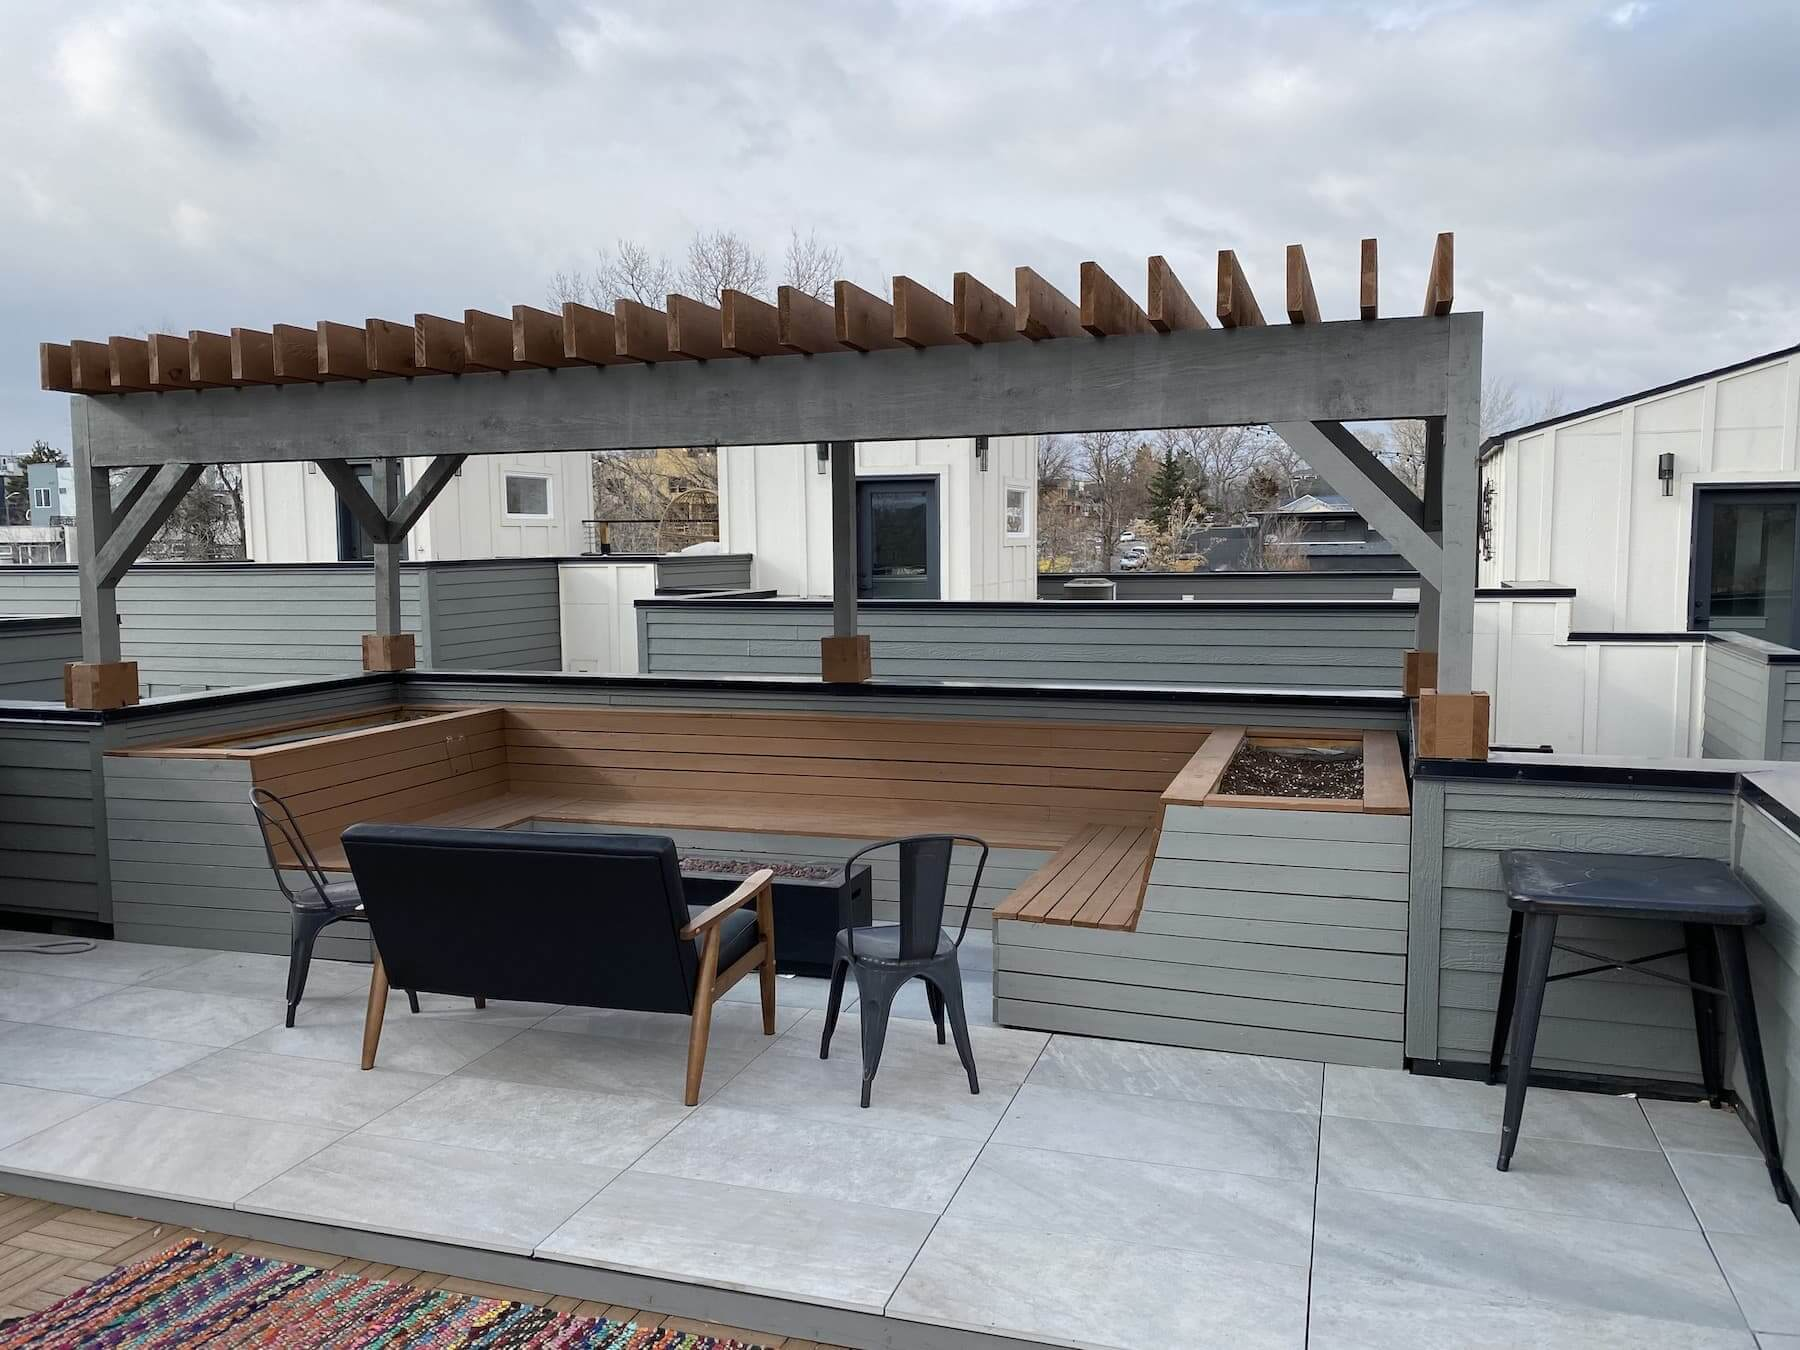 Wooden Pergola Built In Bench Sloan's Lake Denver